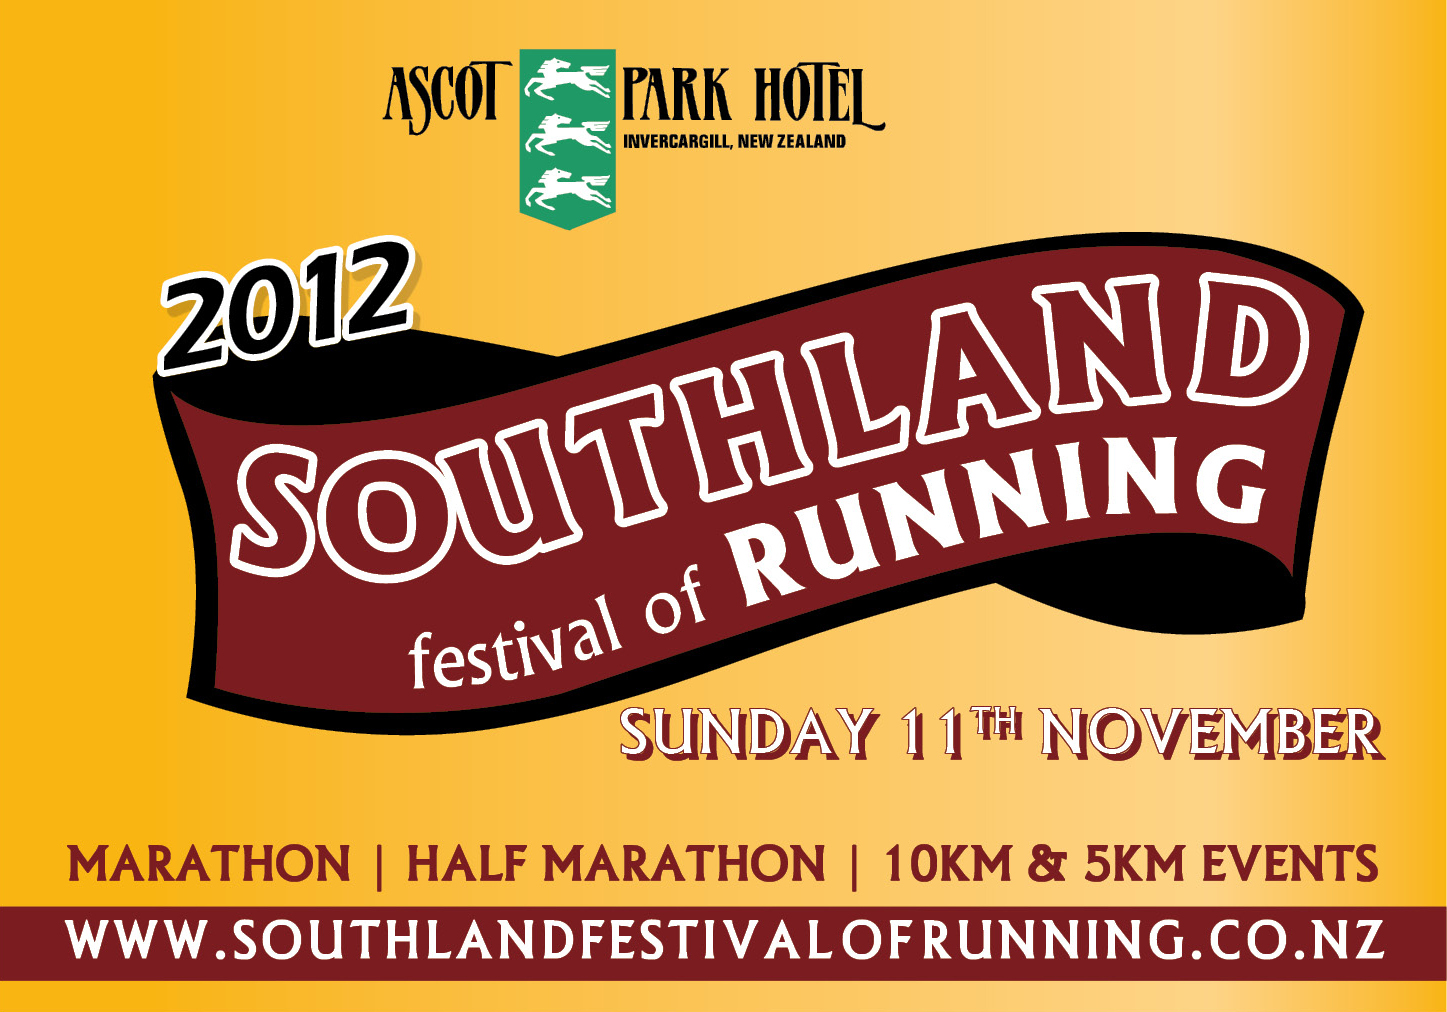 Ascot Park Hotel Southland Festival of Running